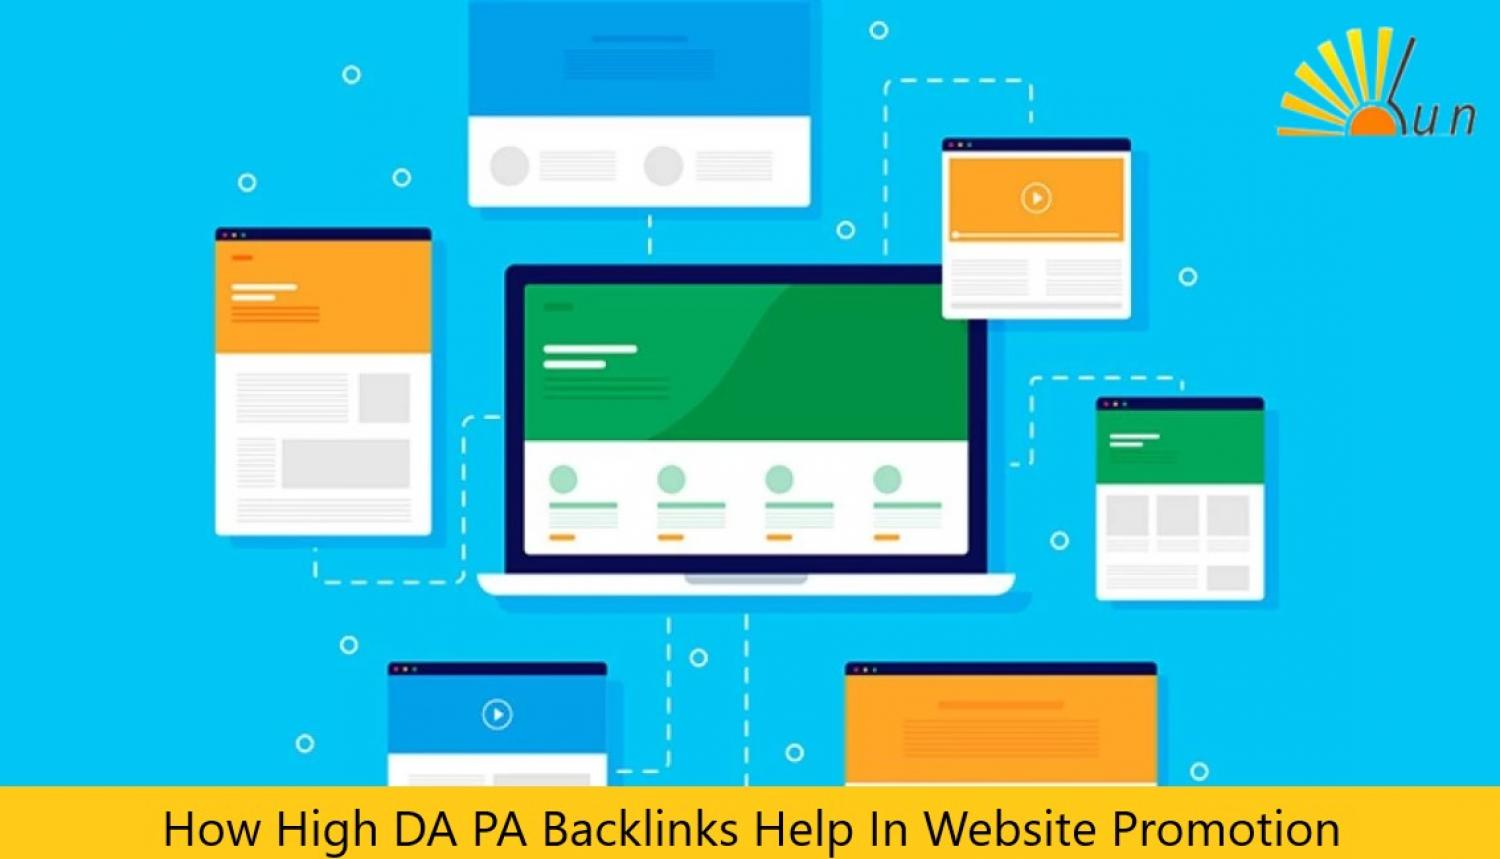 How High DA PA Backlinks Help In Website Promotion